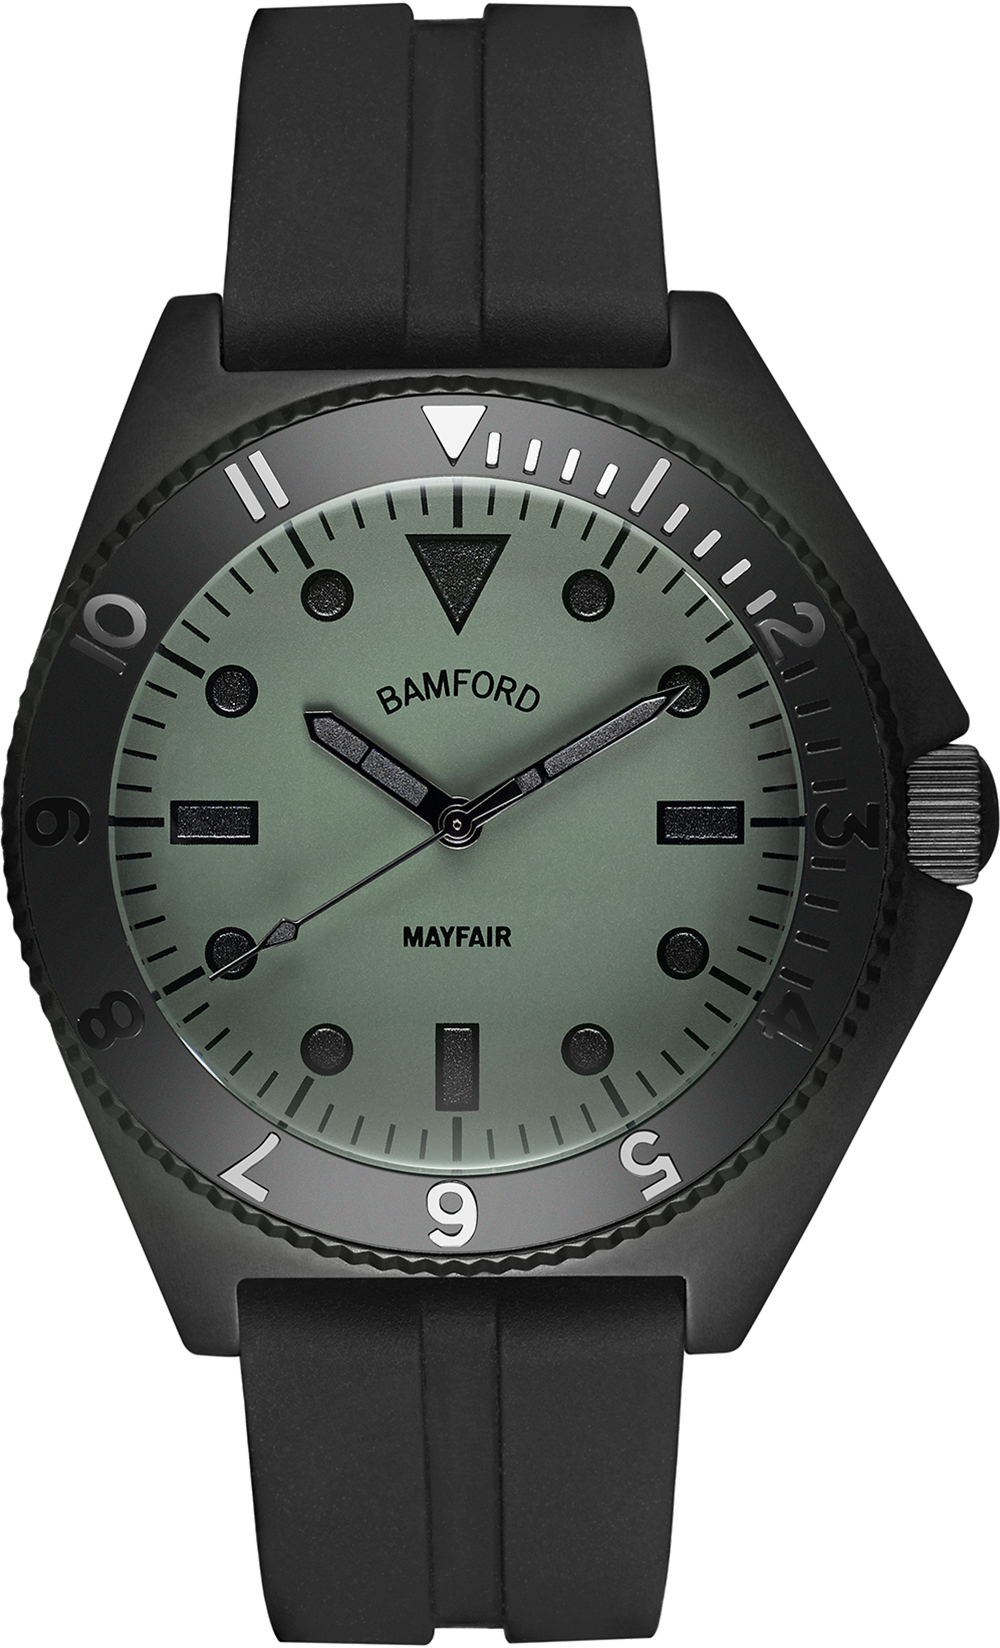 Bamford Mayfair